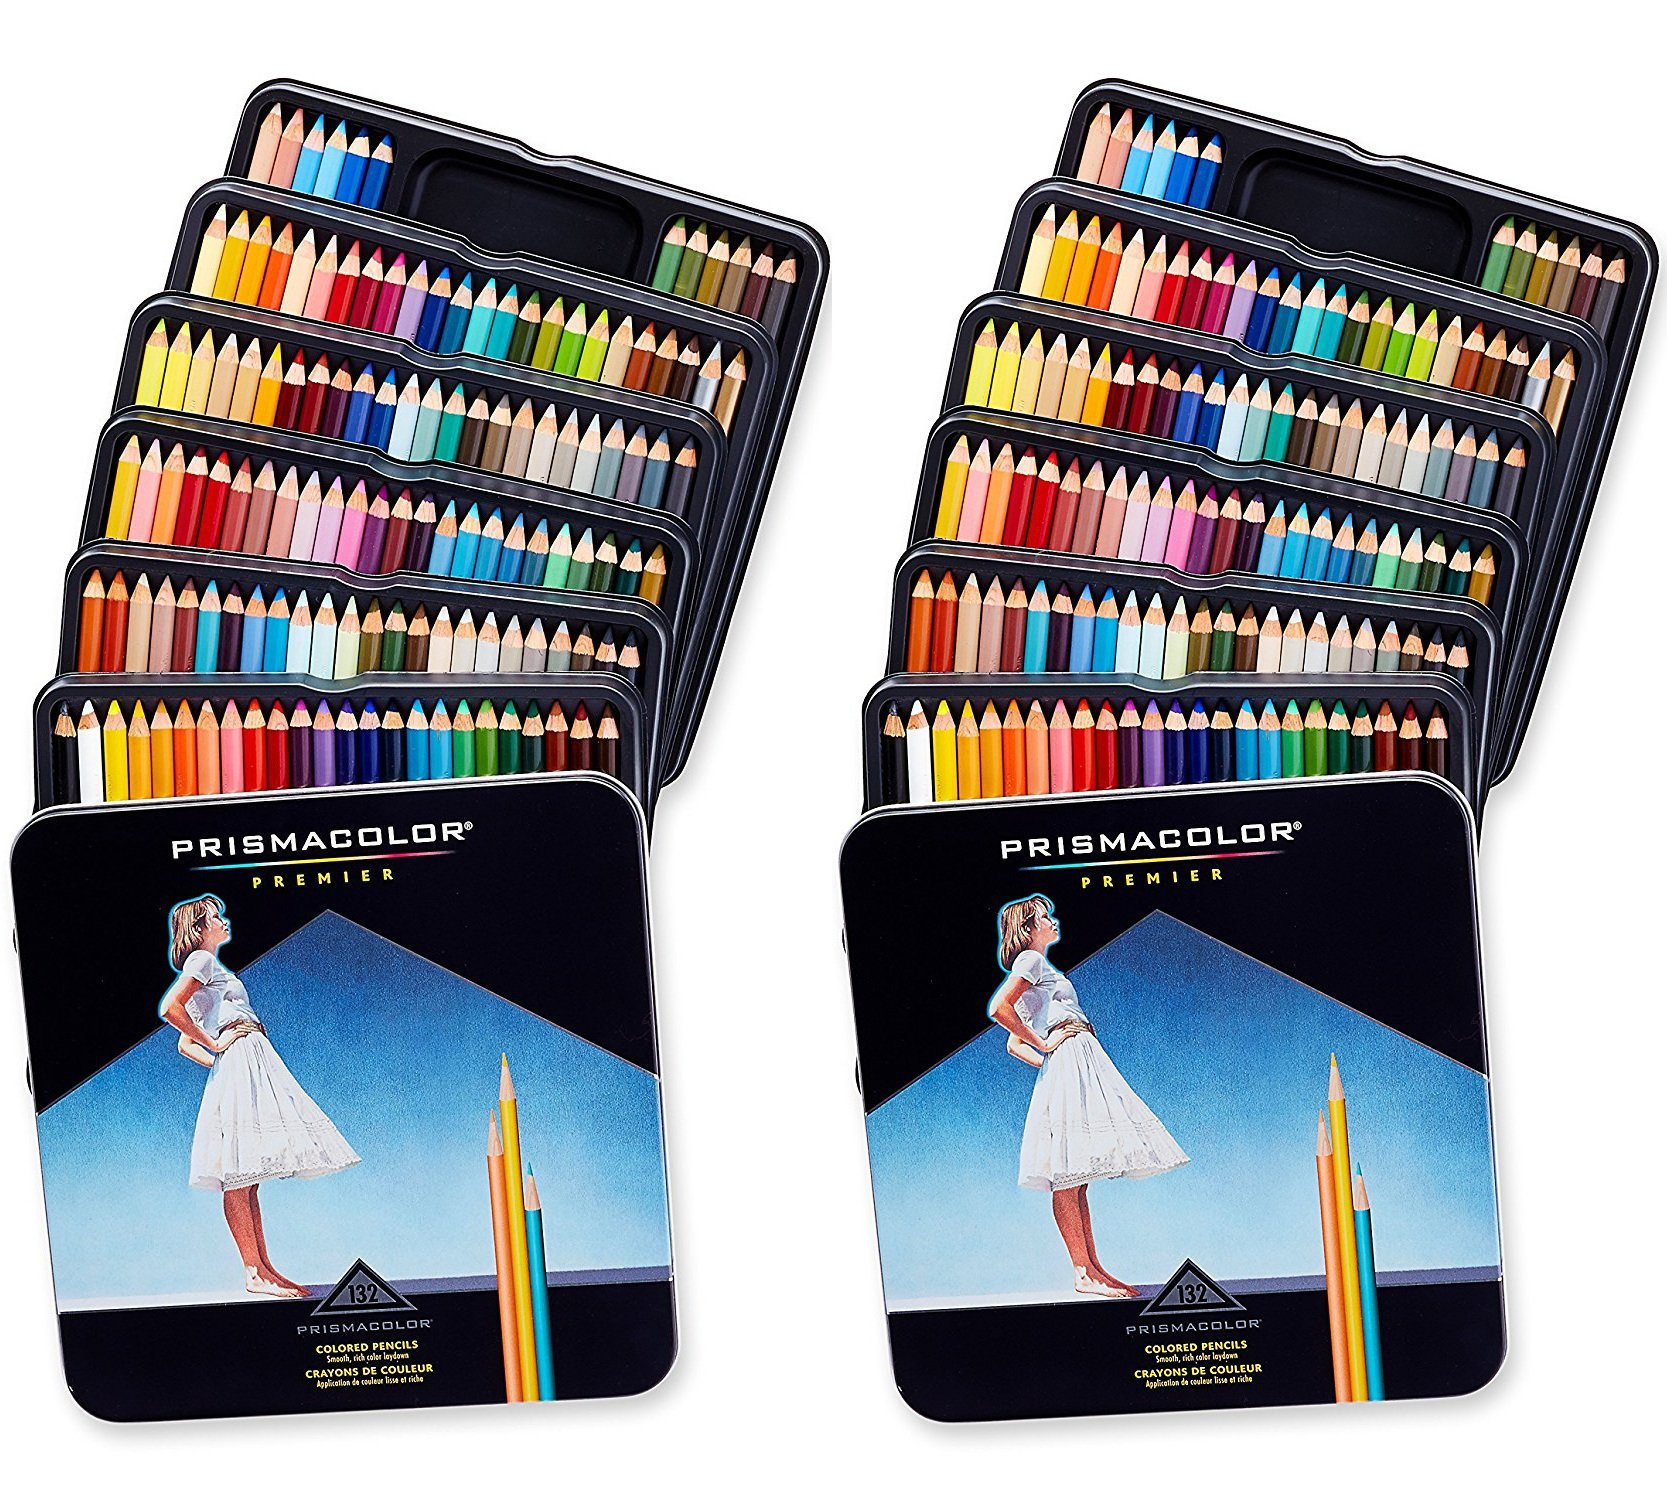 Prismacolor 4484 Premier Soft Core Colored Pencils, 132 Colors, Perfect for Layering, Blending, and Shading - Soft, Thick Cores Create a Smooth Color Laydown, Pigments, Pack of 2 by Prismacolor (Image #1)